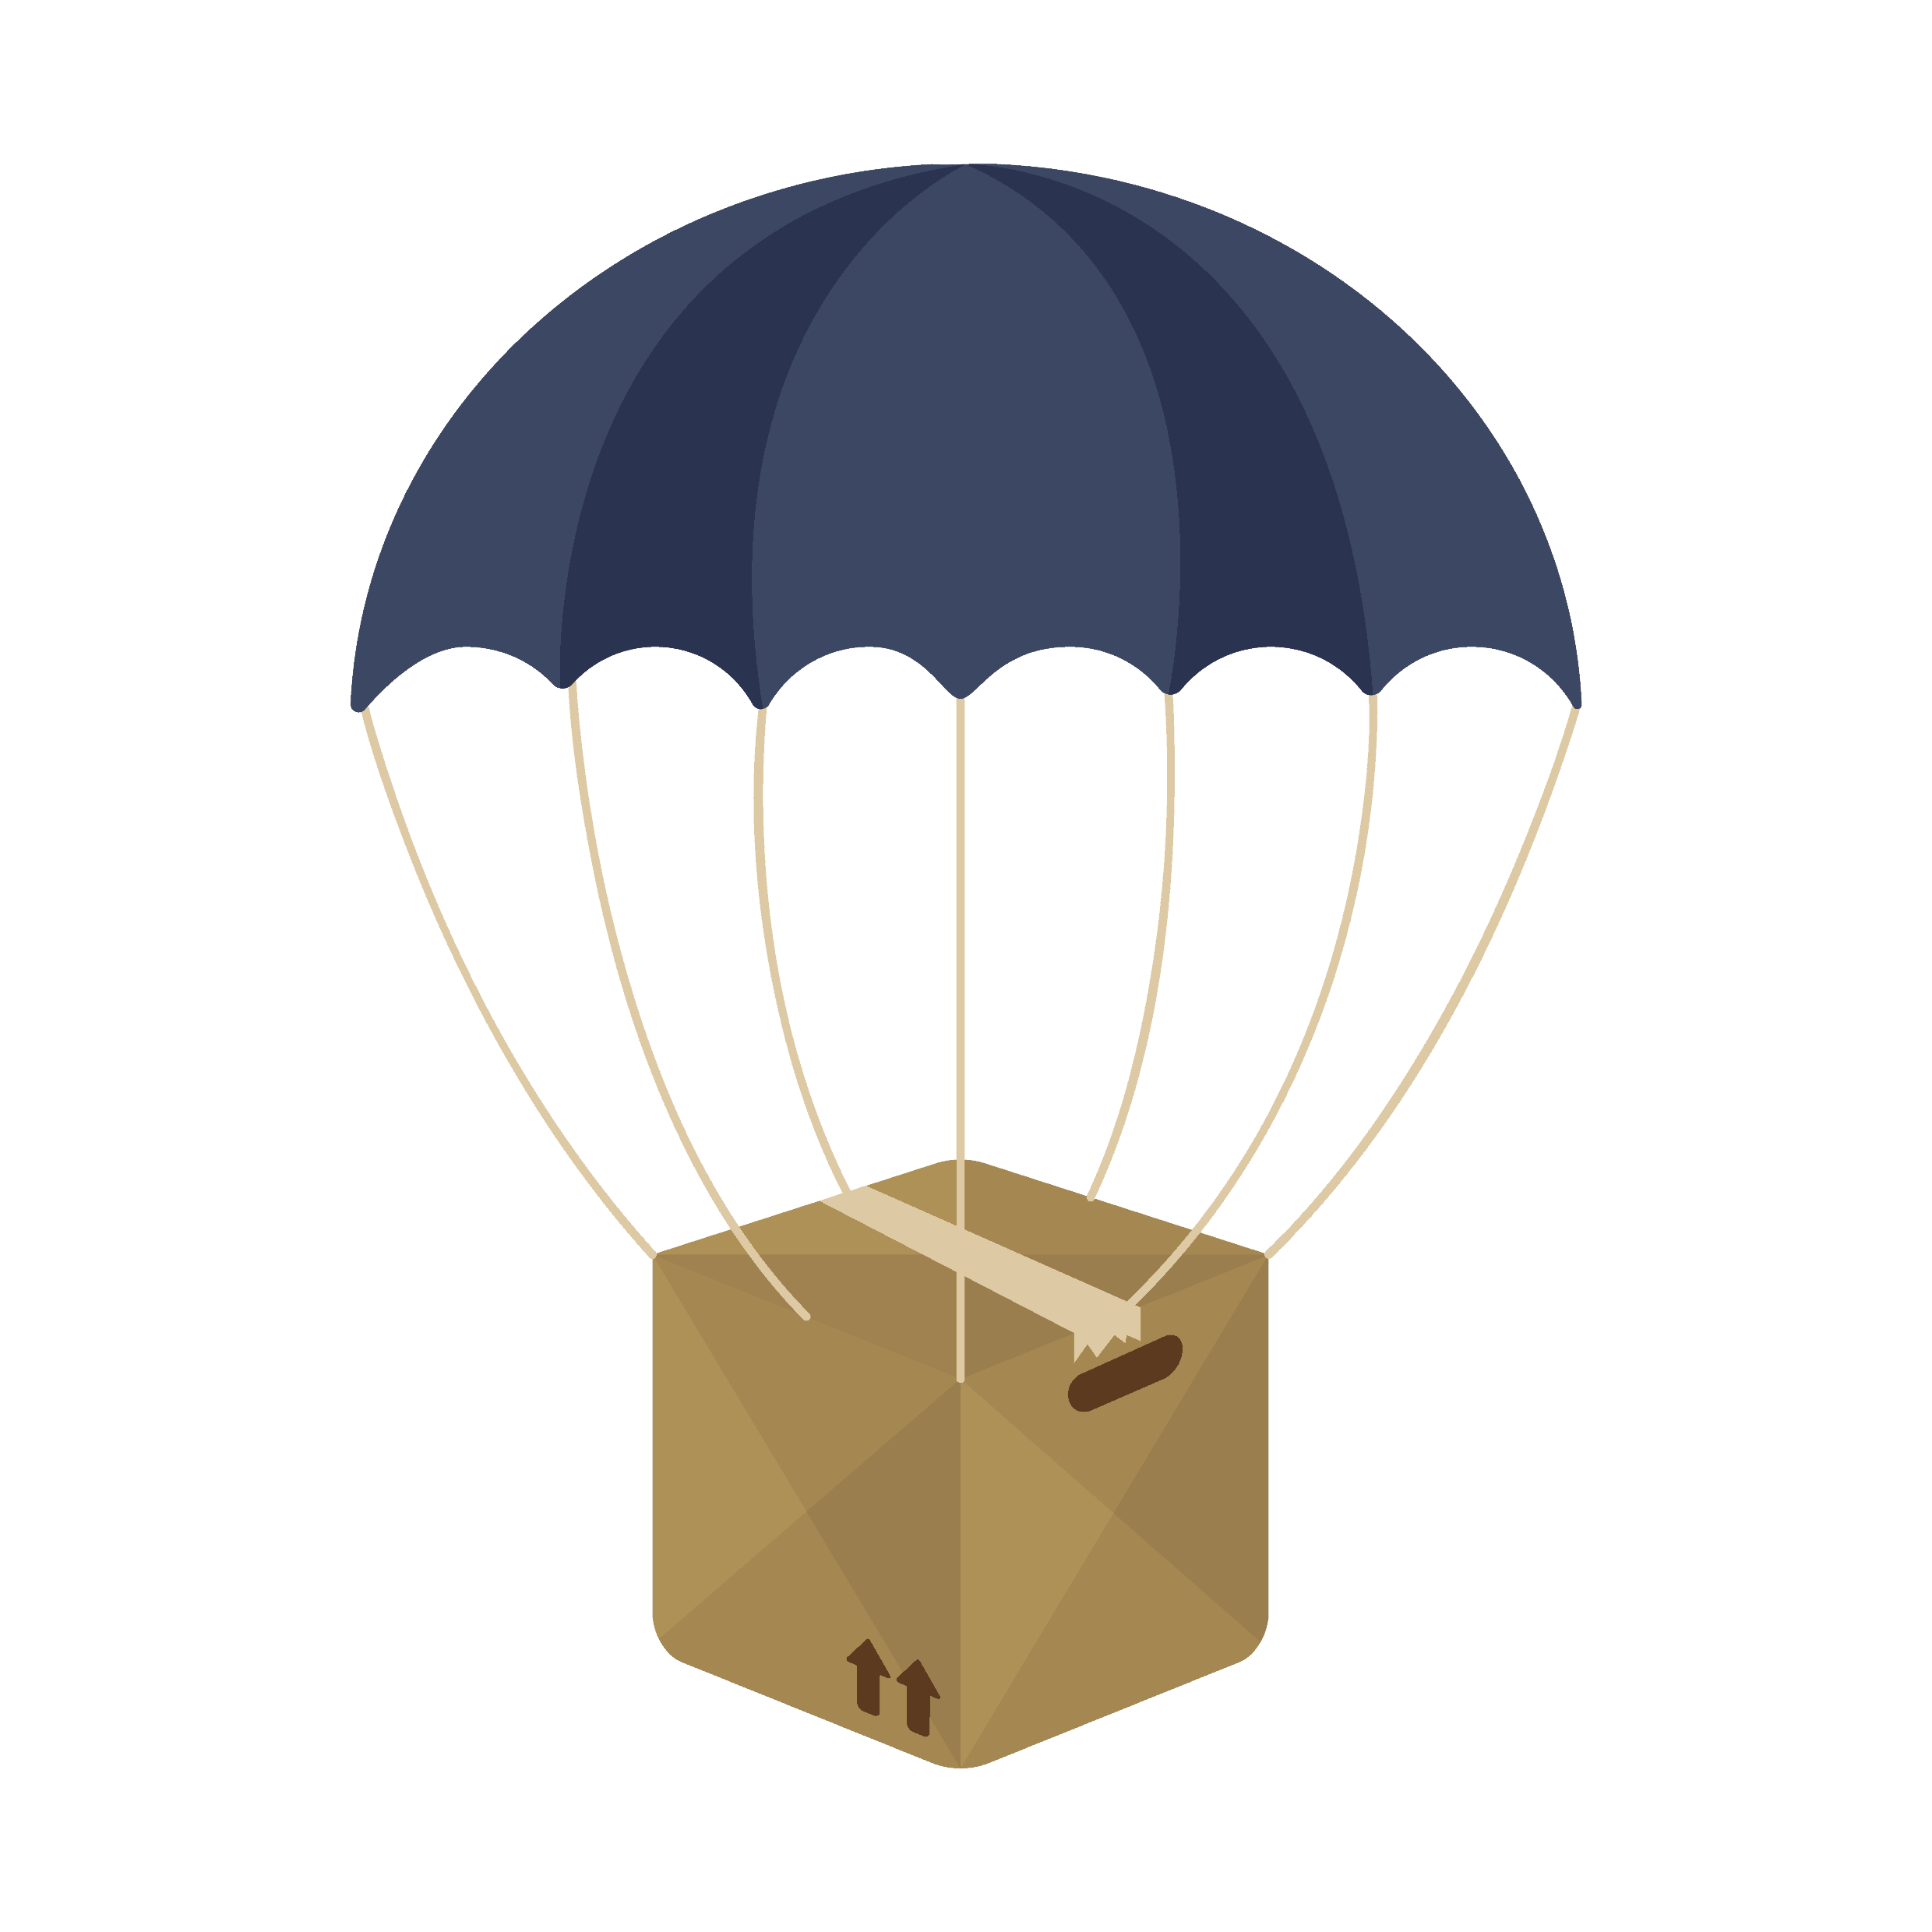 Como Hacer Dropshipping - A Drop Shipped Box